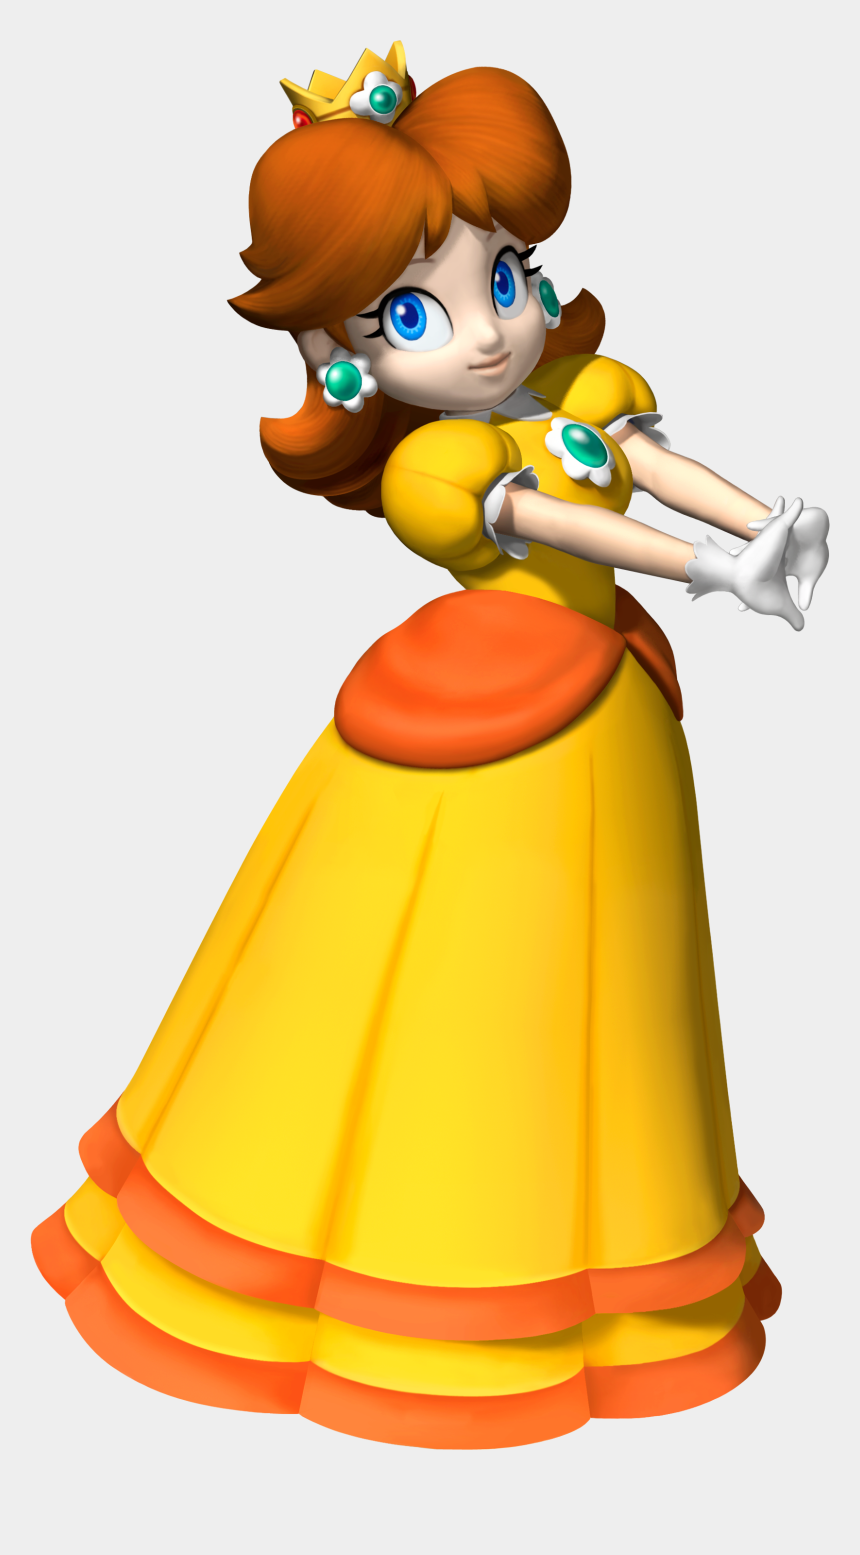 kidnapped clipart, Cartoons - I Always Thought Princess Daisy Was Prettier Than Peach - Princess Daisy